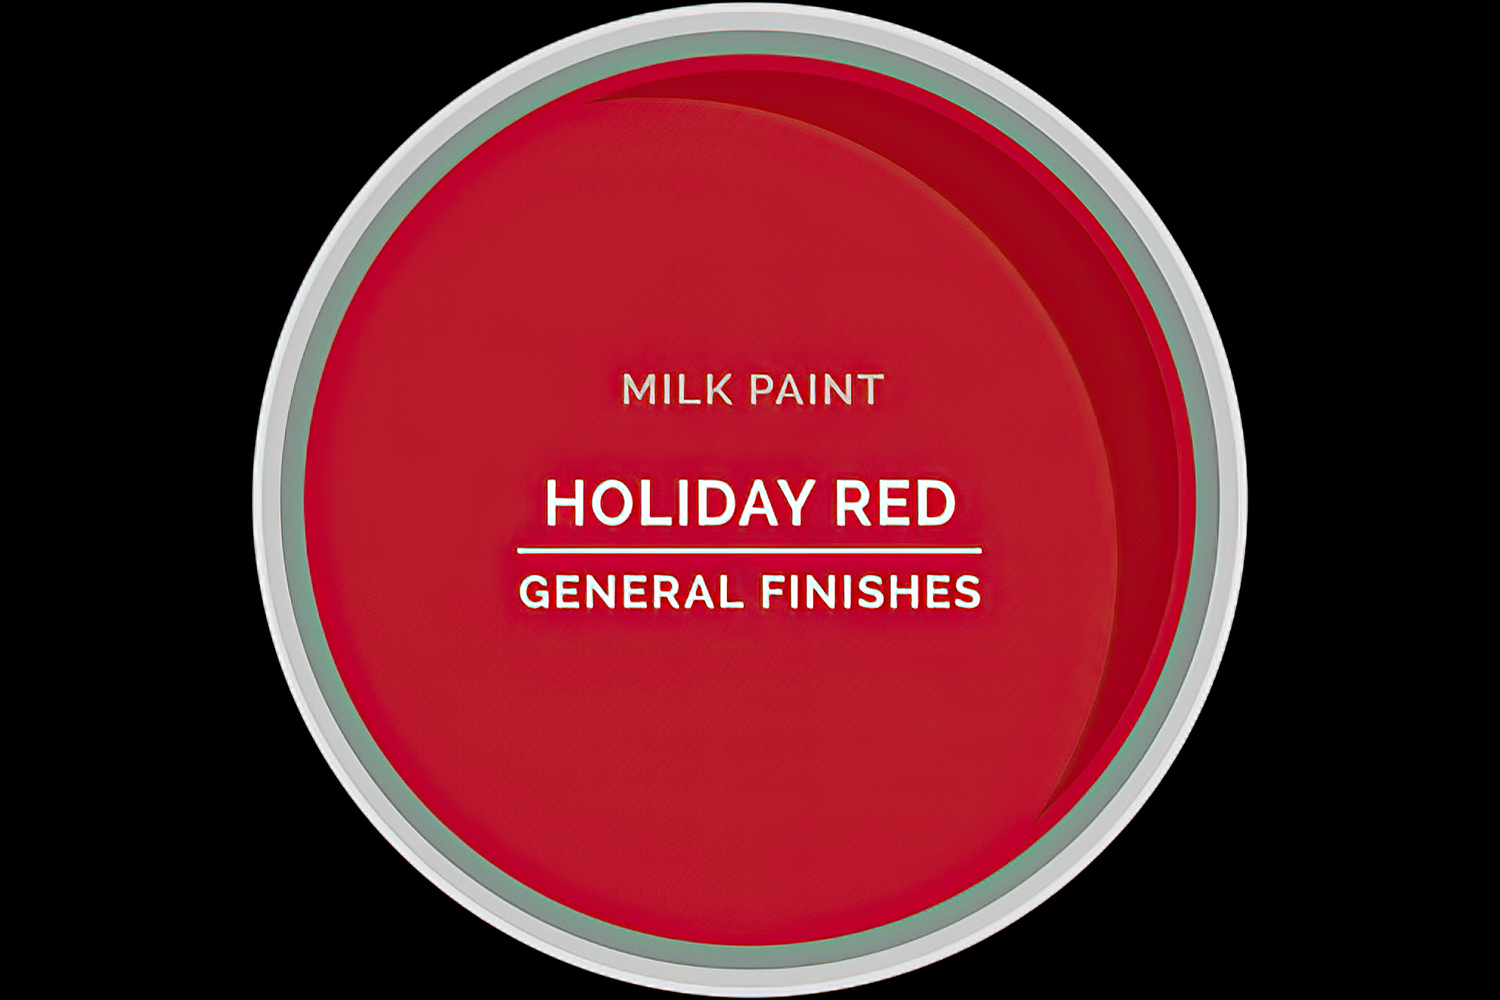 Color Chip Milk Paint HOLIDAY RED General Finishes Copy